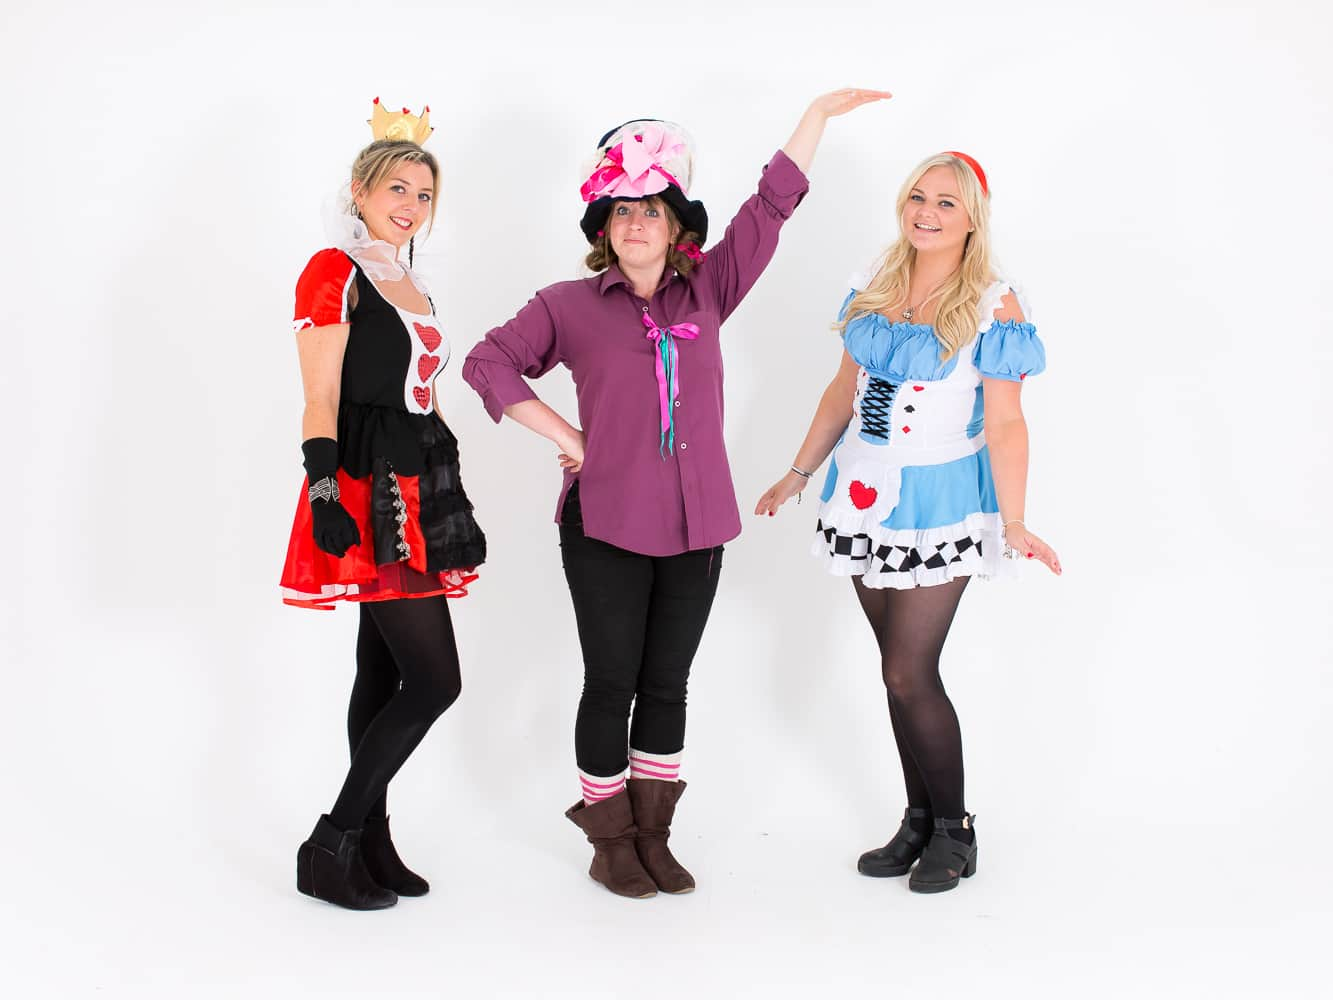 Some of the staff from LNOF dressed up as The Mad Hatter, the Queen of Hearts and Alice in Wonderland